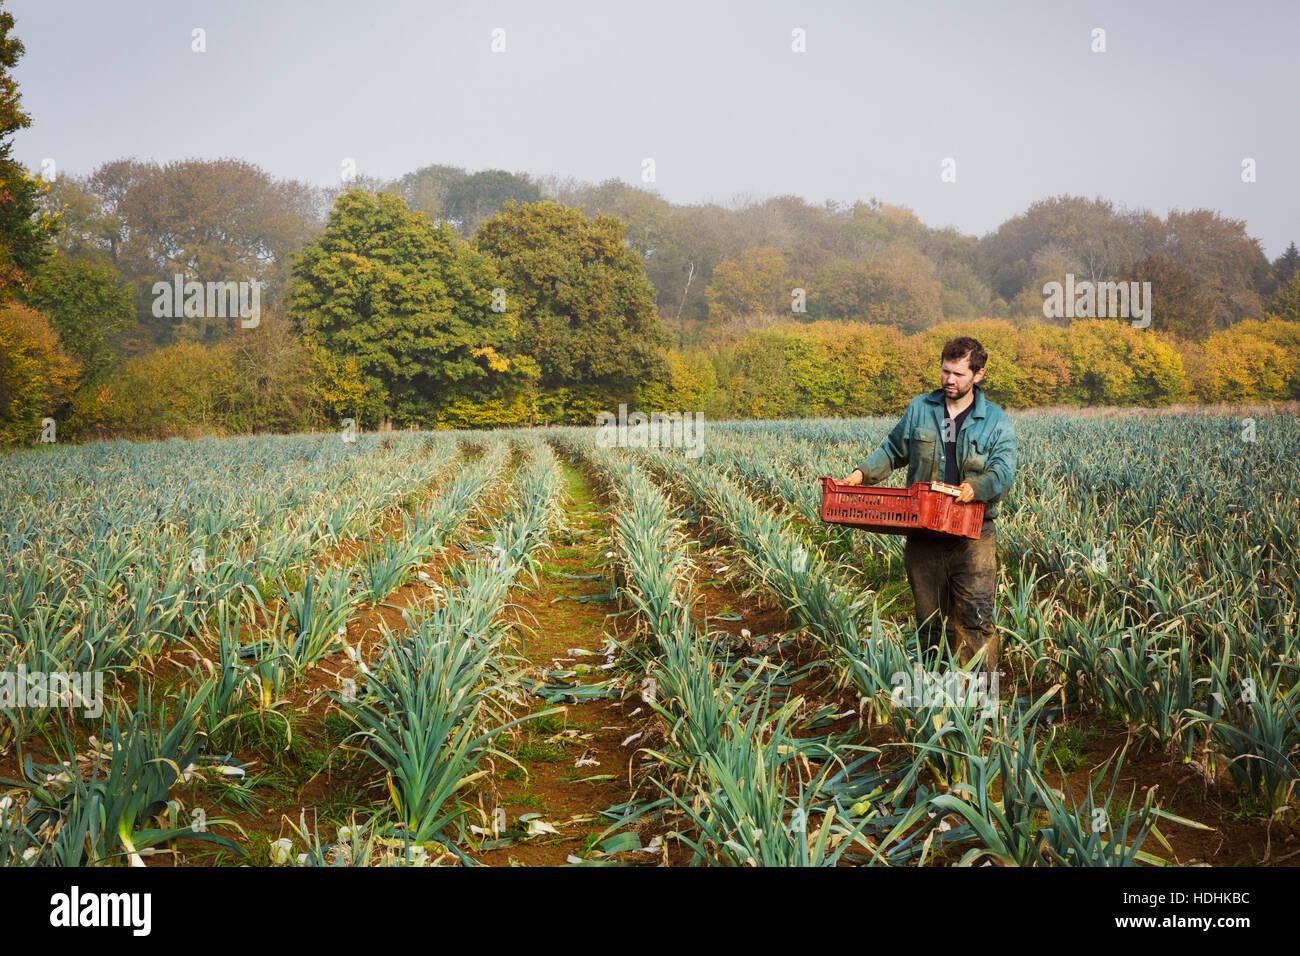 A woman carrying a crate of picked fresh leeks across a field. Stock Photo